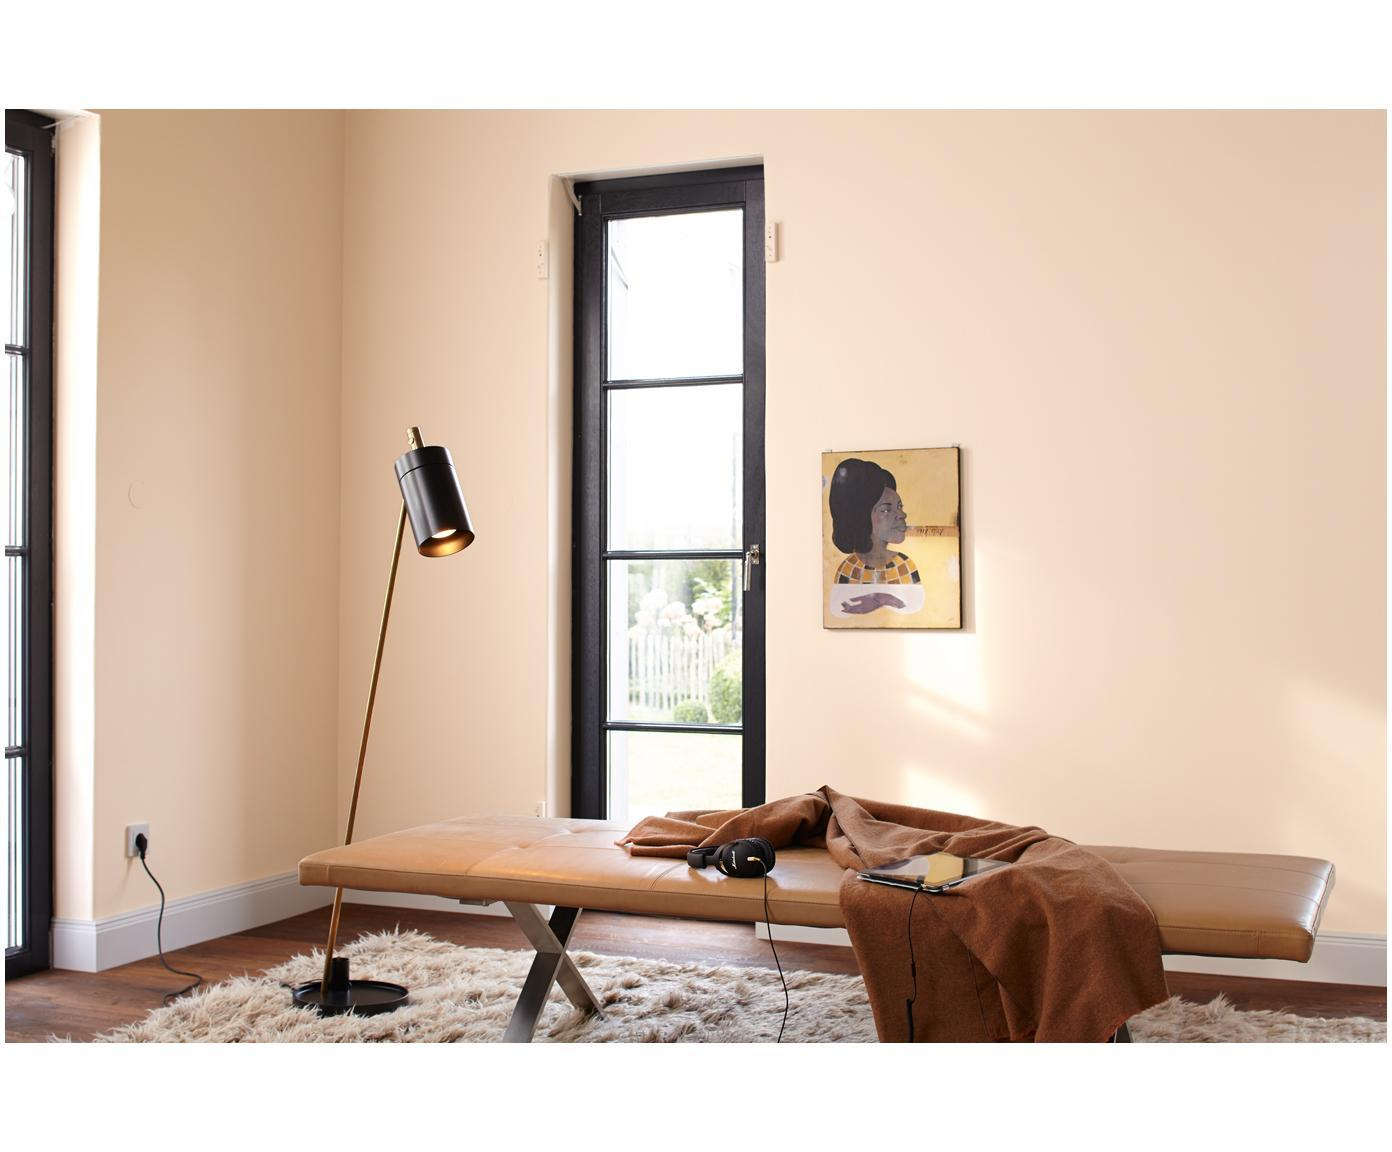 Wandfarbe Schlafzimmer Pastell